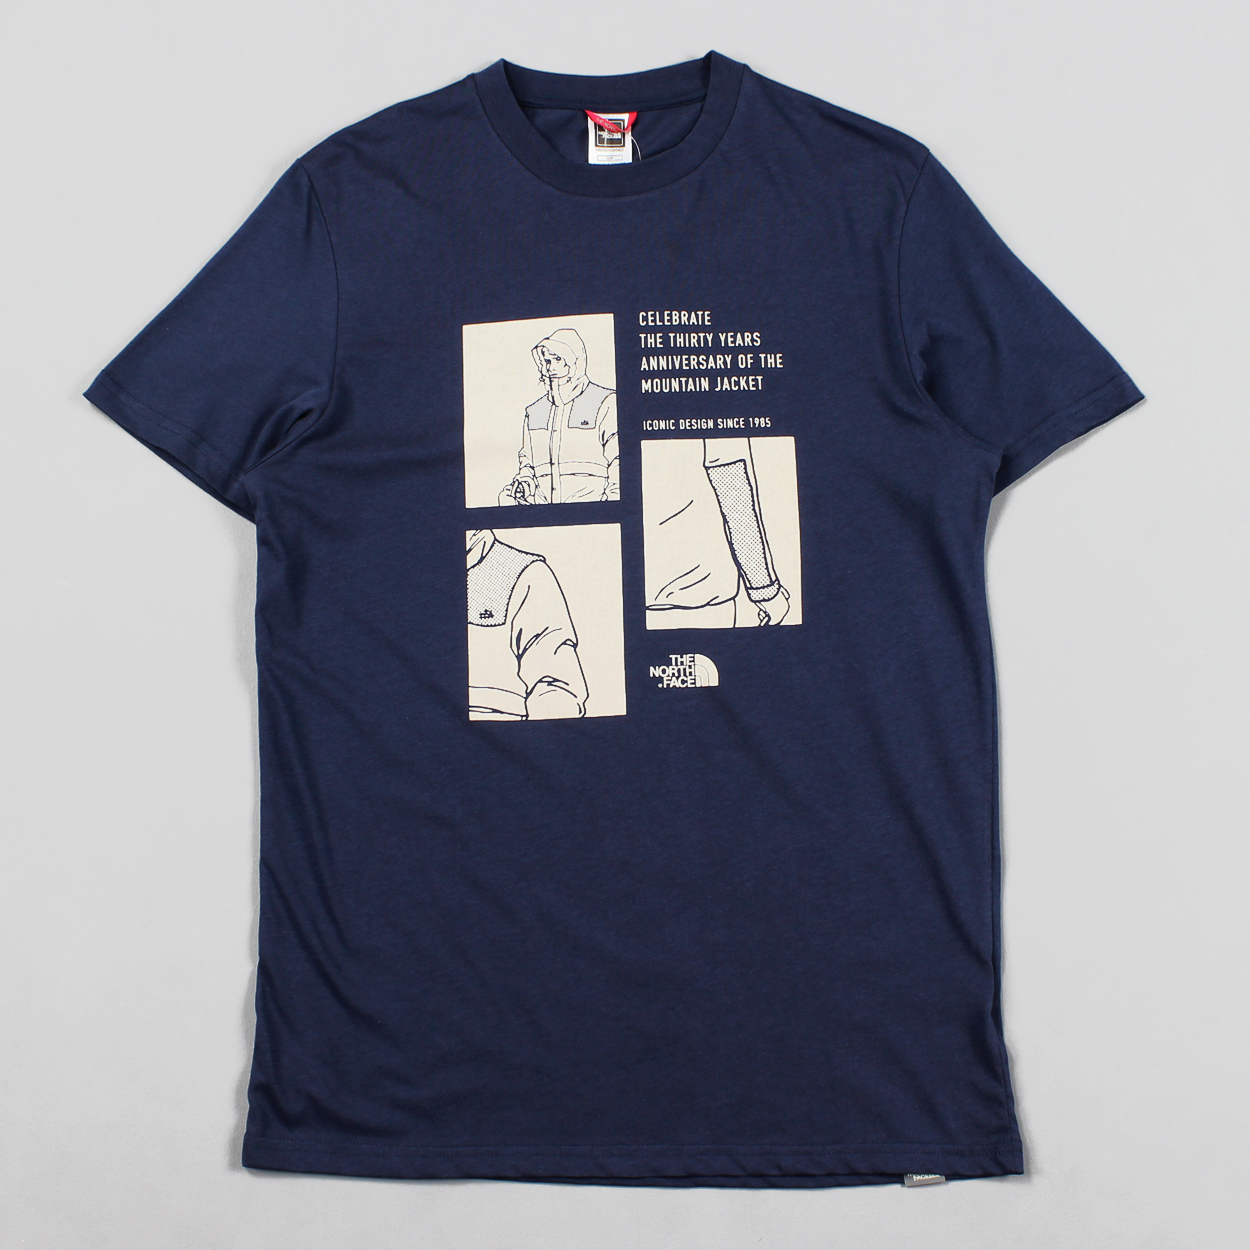 212d1375f The North Face mountain celebration mens t-shirt navy blue £17.50